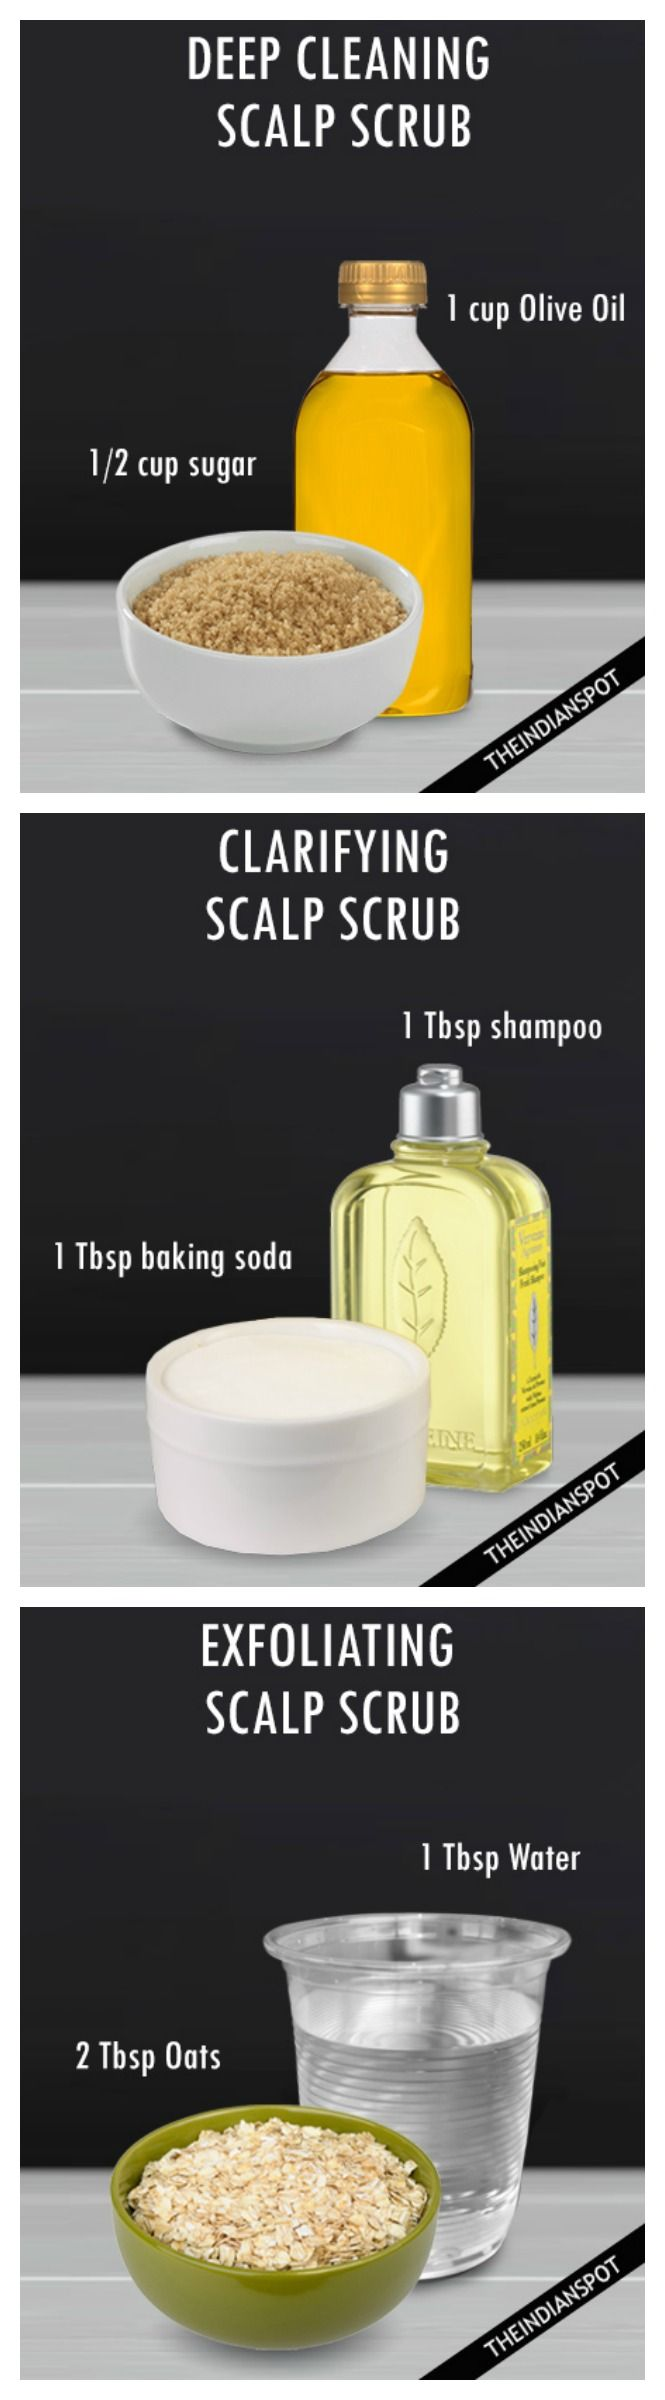 Scrub for the scalp at home 68